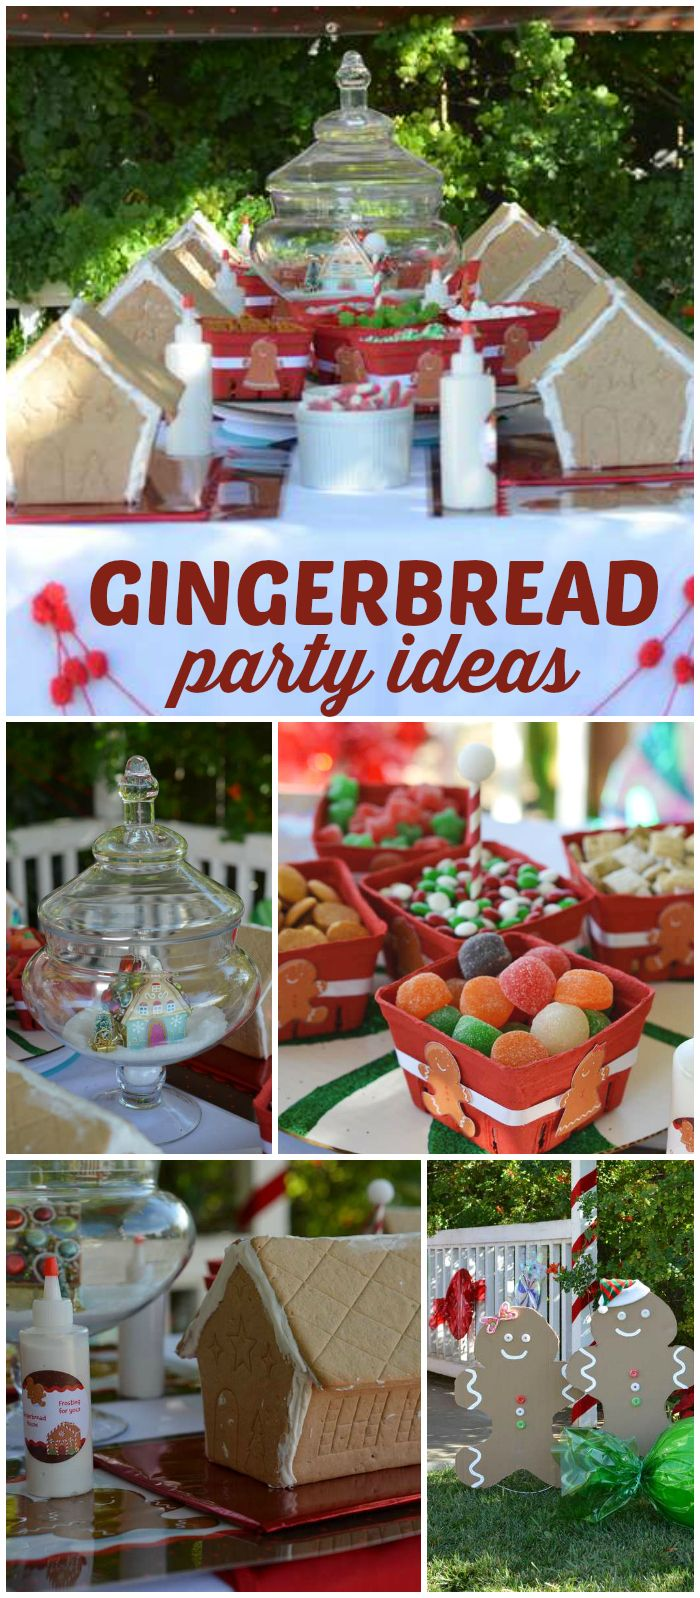 A kid friendly gingerbread house decorating party with candy in lazy susans and icing squeeze bottles! See more party planning ideas at CatchMyParty.com!